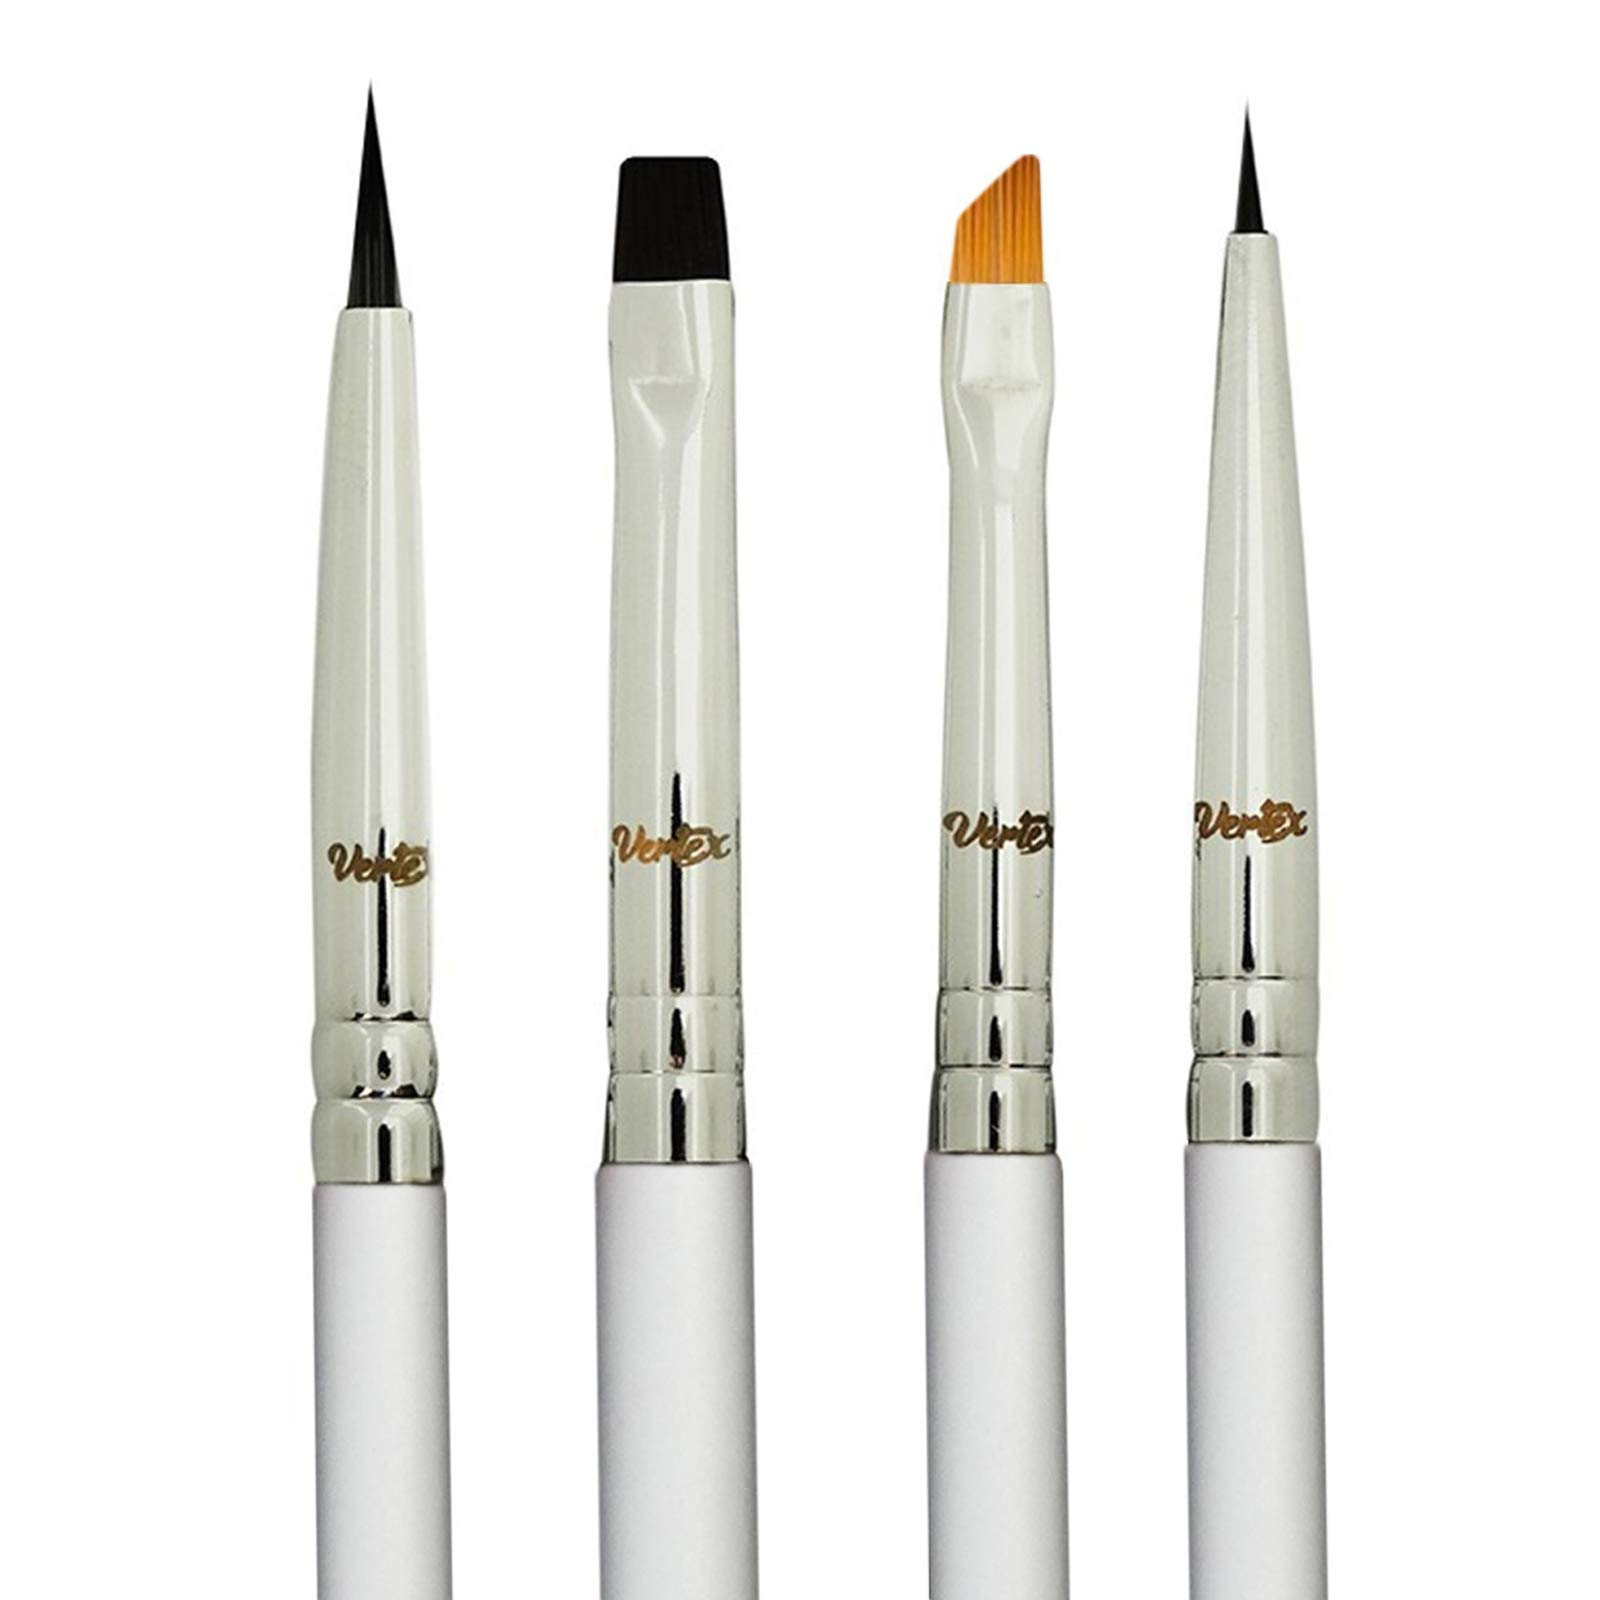 Vertex Beauty Eyeliner Makeup Brush Set - Fine, Angled, Winged, Firm, and Flat Brushes - Liquid or Gel Applicator Pencil-Point Thin Bristles for Detailed Precision Eye Liner - Create Flawless, Innovated, and Detailed Designs that Glide Perfectly Over Eye Corners (4 Set)